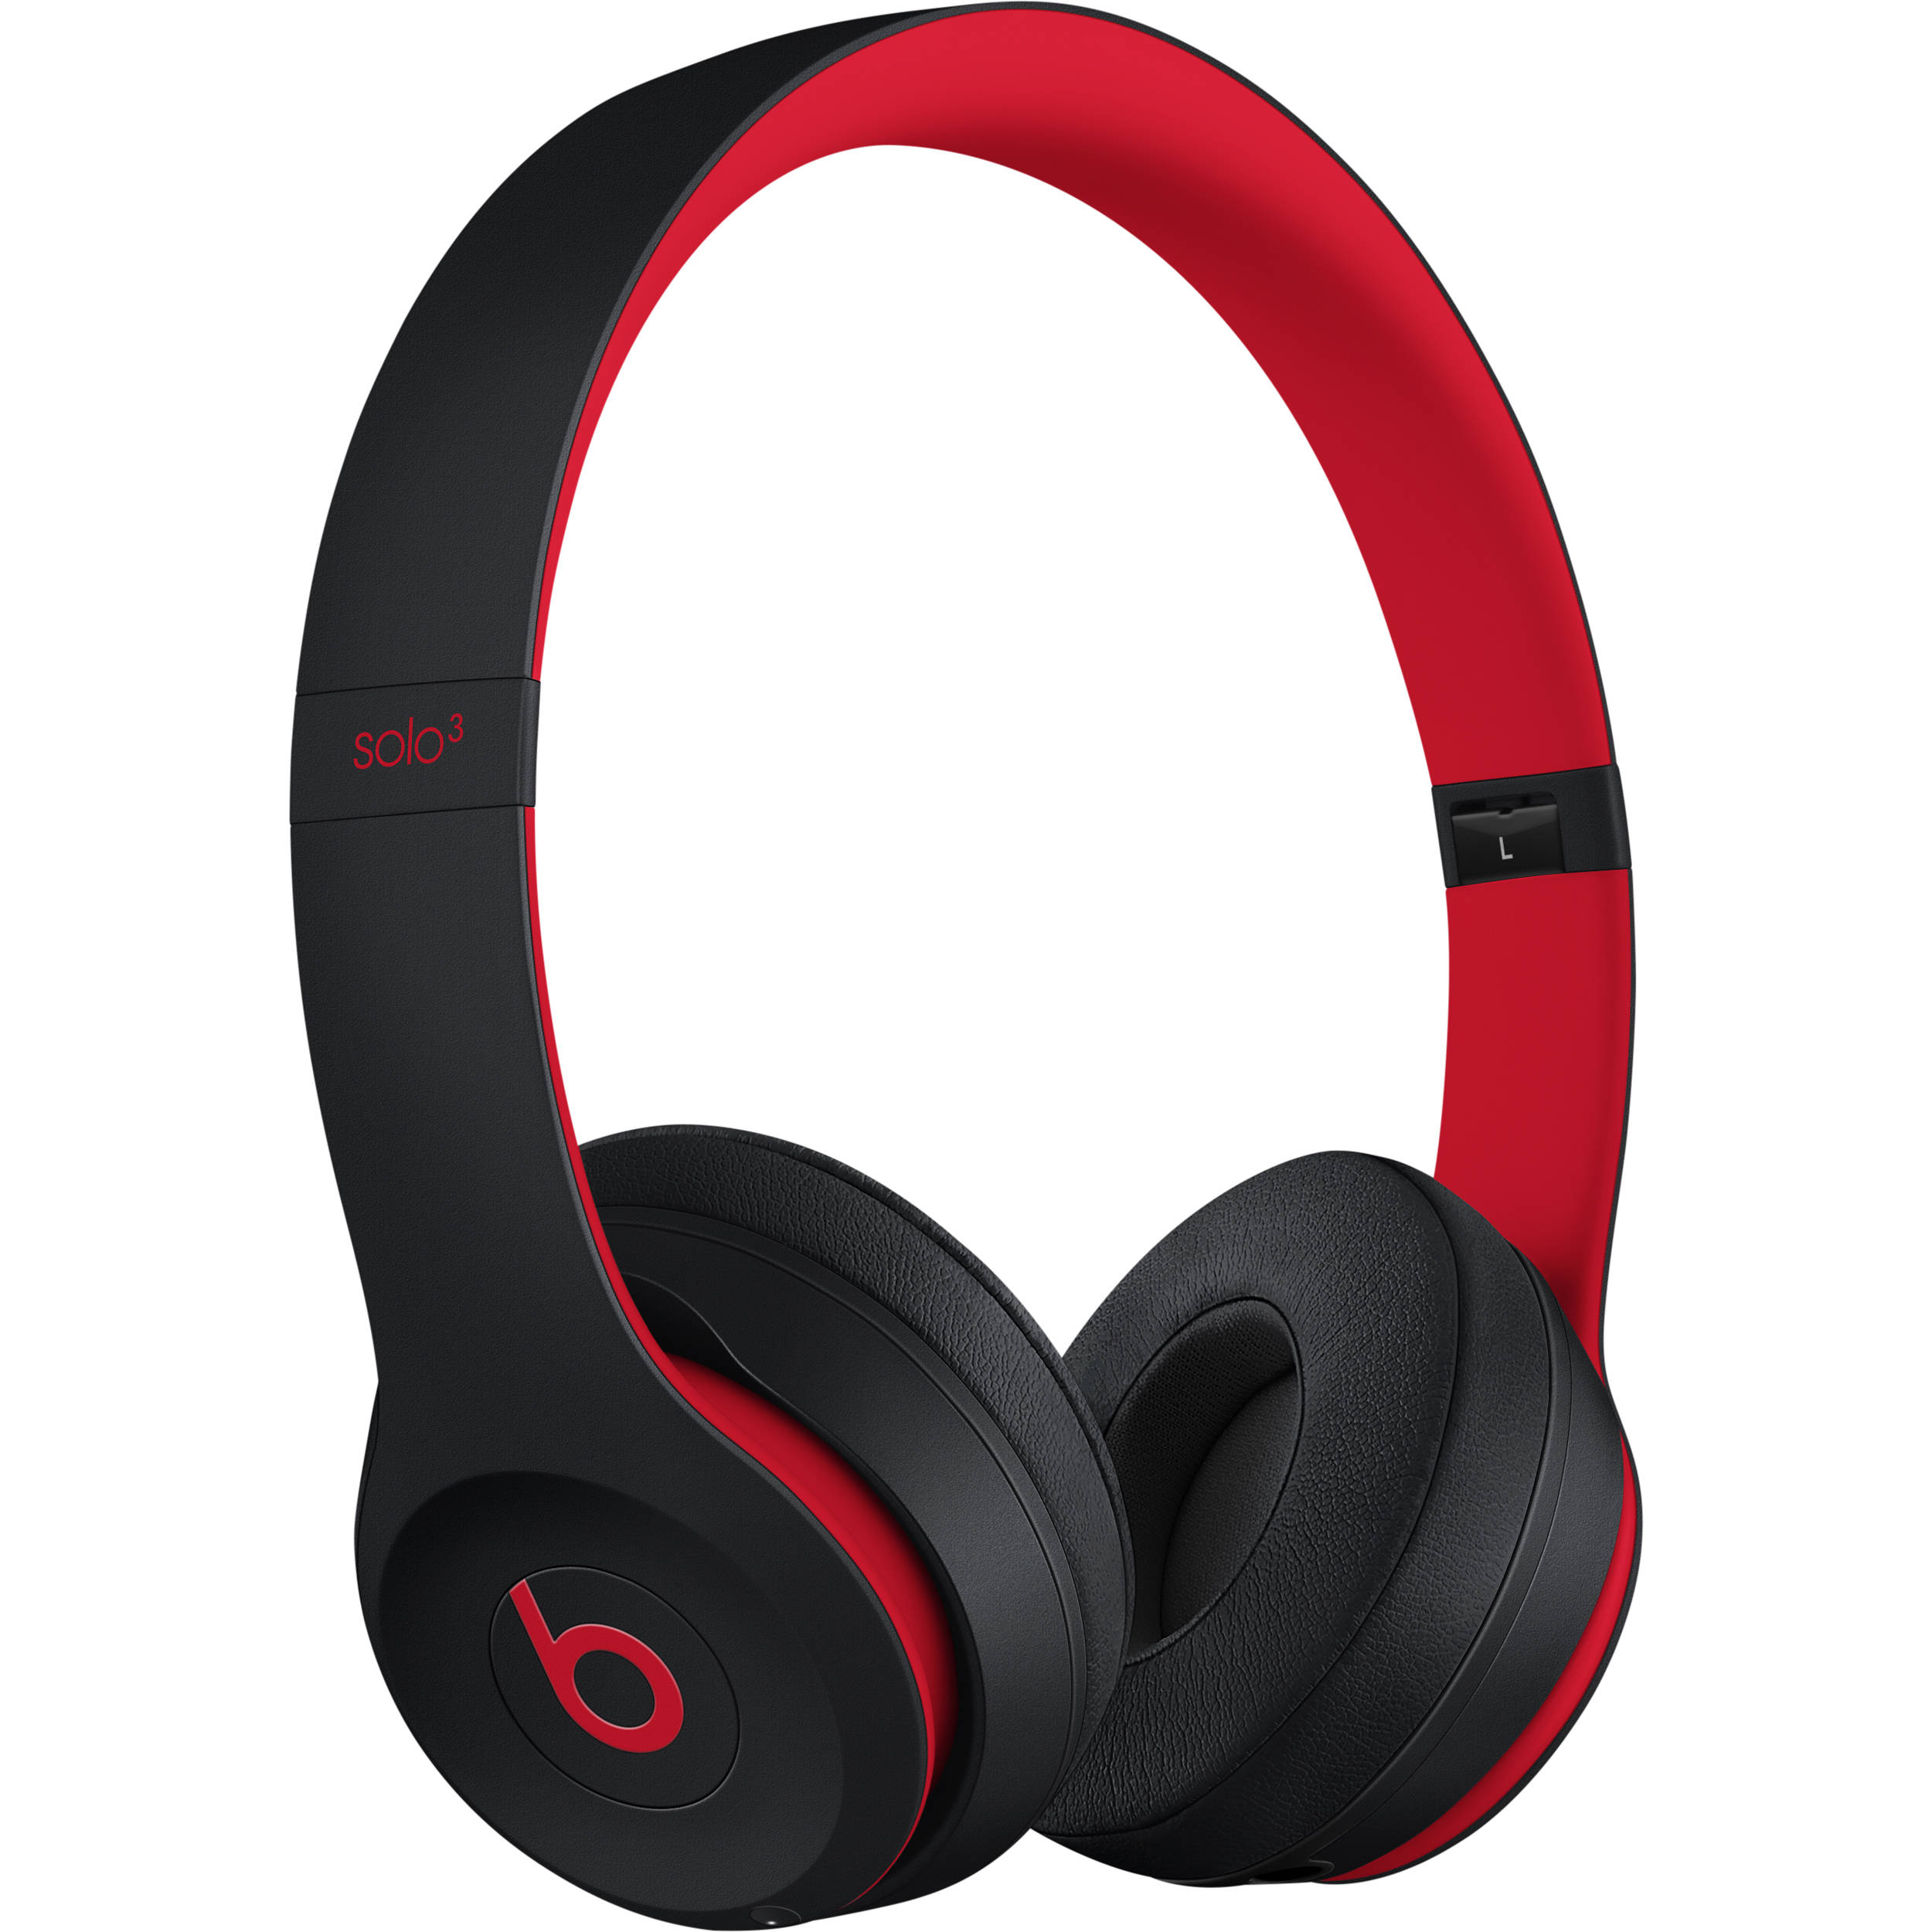 beats_by_dr_dre_mrqc2ll_a_beats_solo3_wi